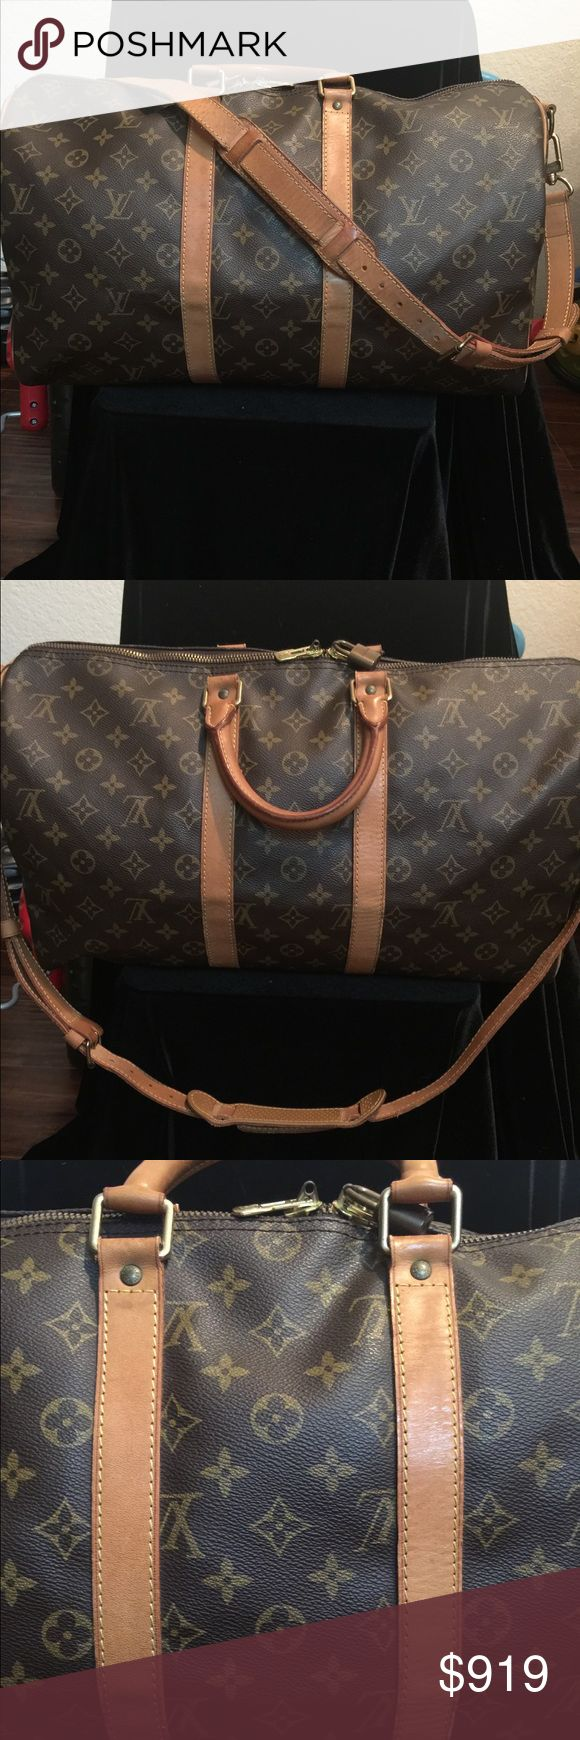 Louis Vuitton Keepall 45 with strap LV Monogram Canvas Keepall 45 with strap and lock  but no Overall good condition Louis Vuitton Bags Travel Bags